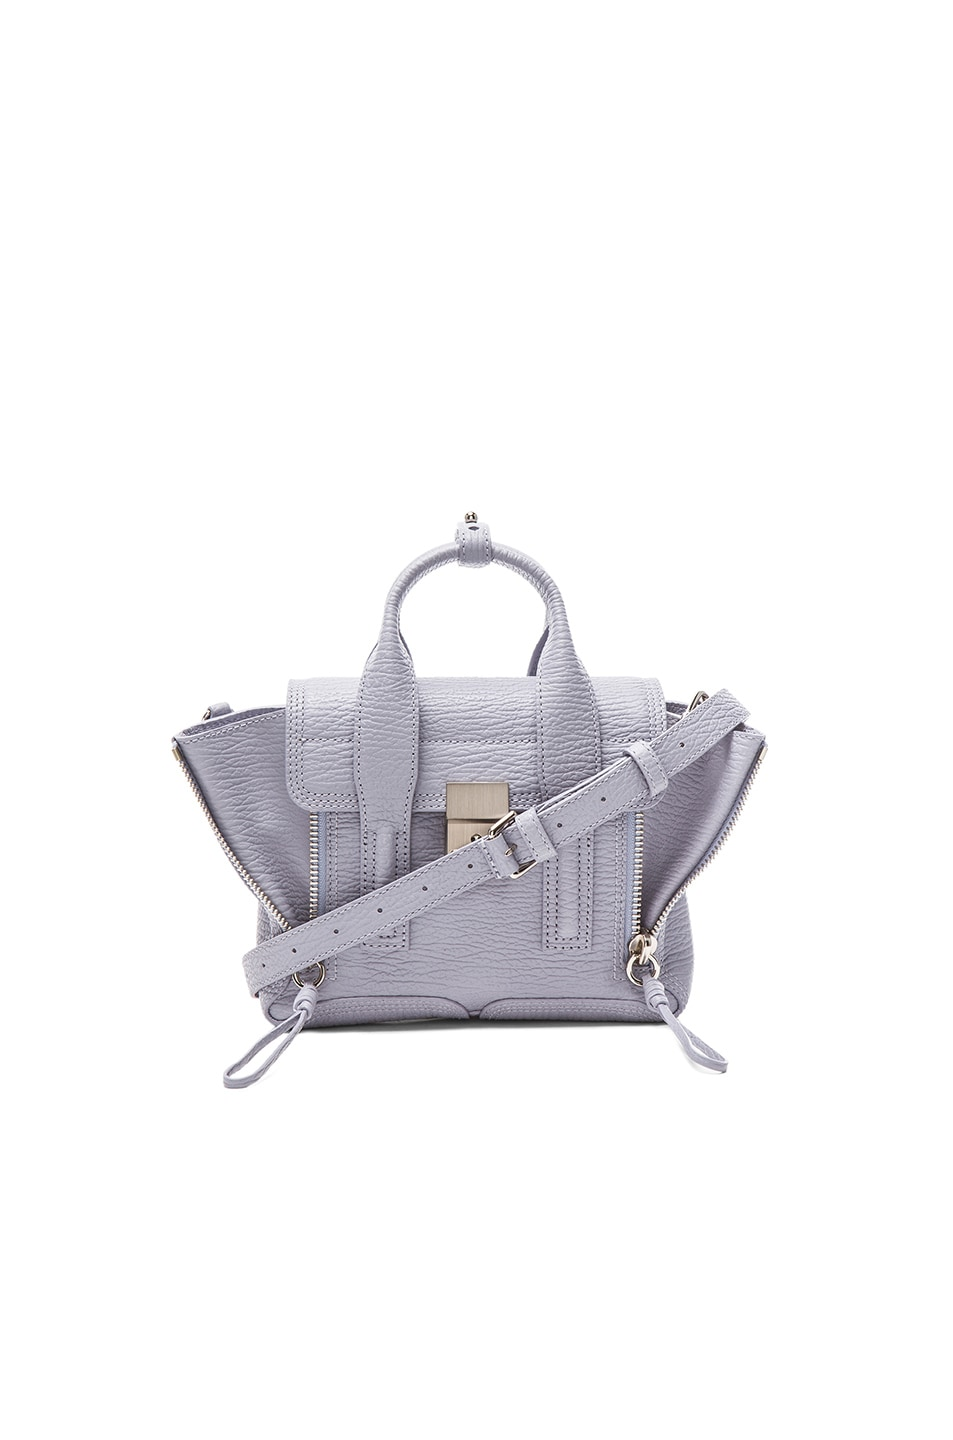 Image 1 of 3.1 phillip lim Mini Pashli Satchel in Lilac